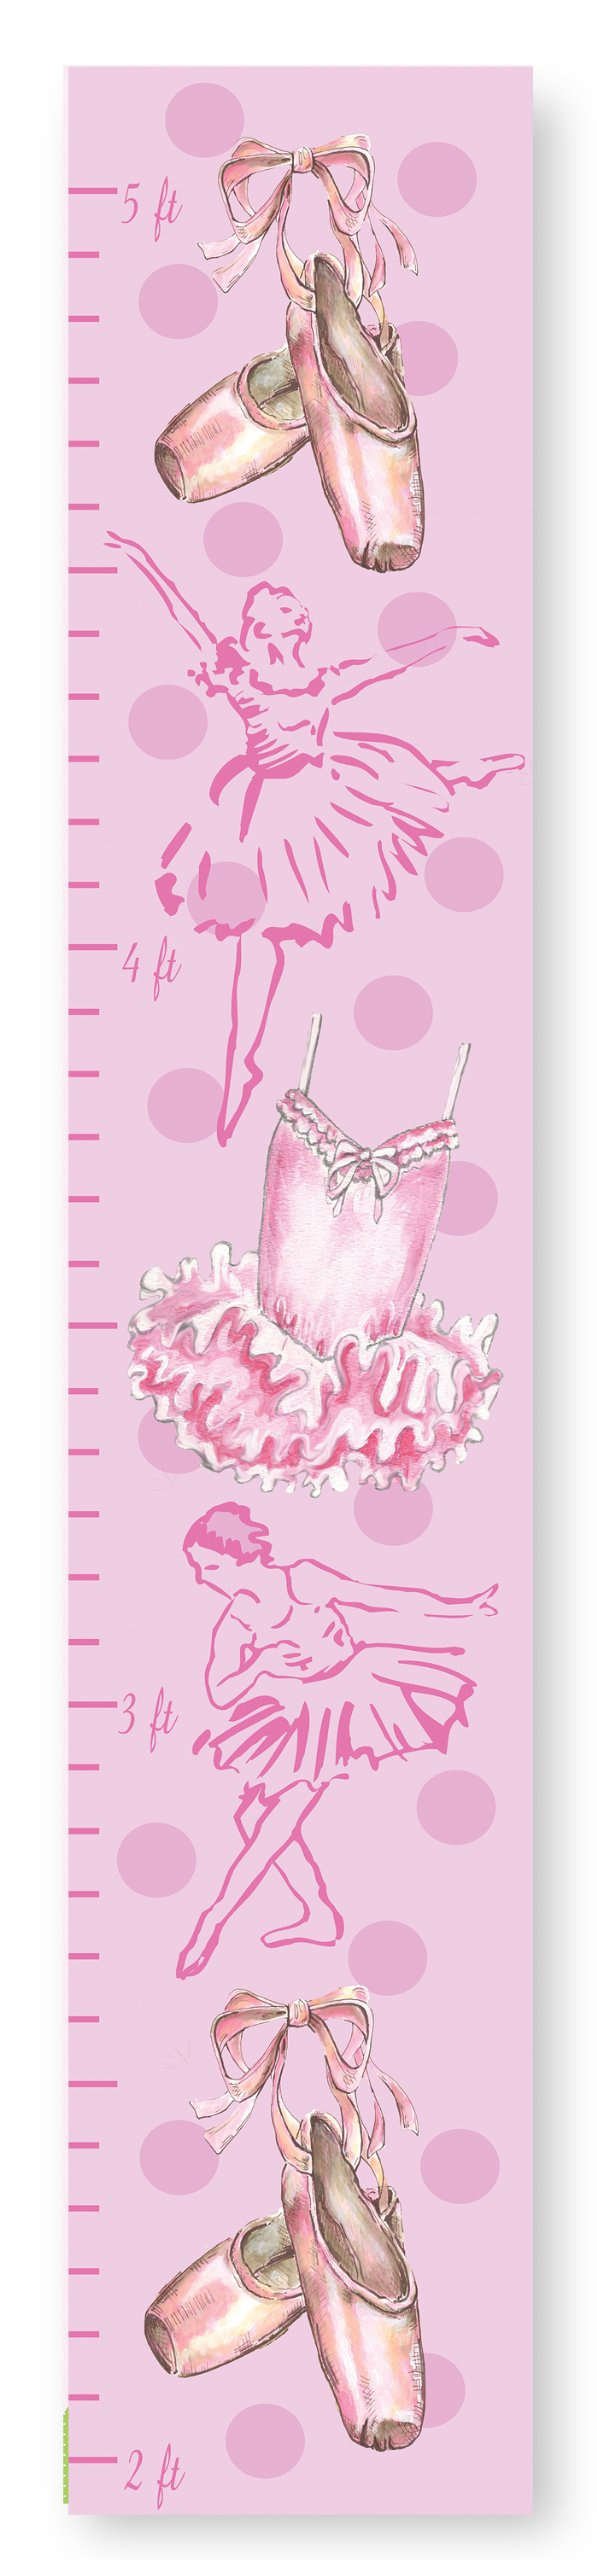 The Kids Room by Stupell Modern Ballerinas and Ballet Slippers Growth Chart, 7 x 0.5 x 39, Proudly Made in USA by The Kids Room by Stupell